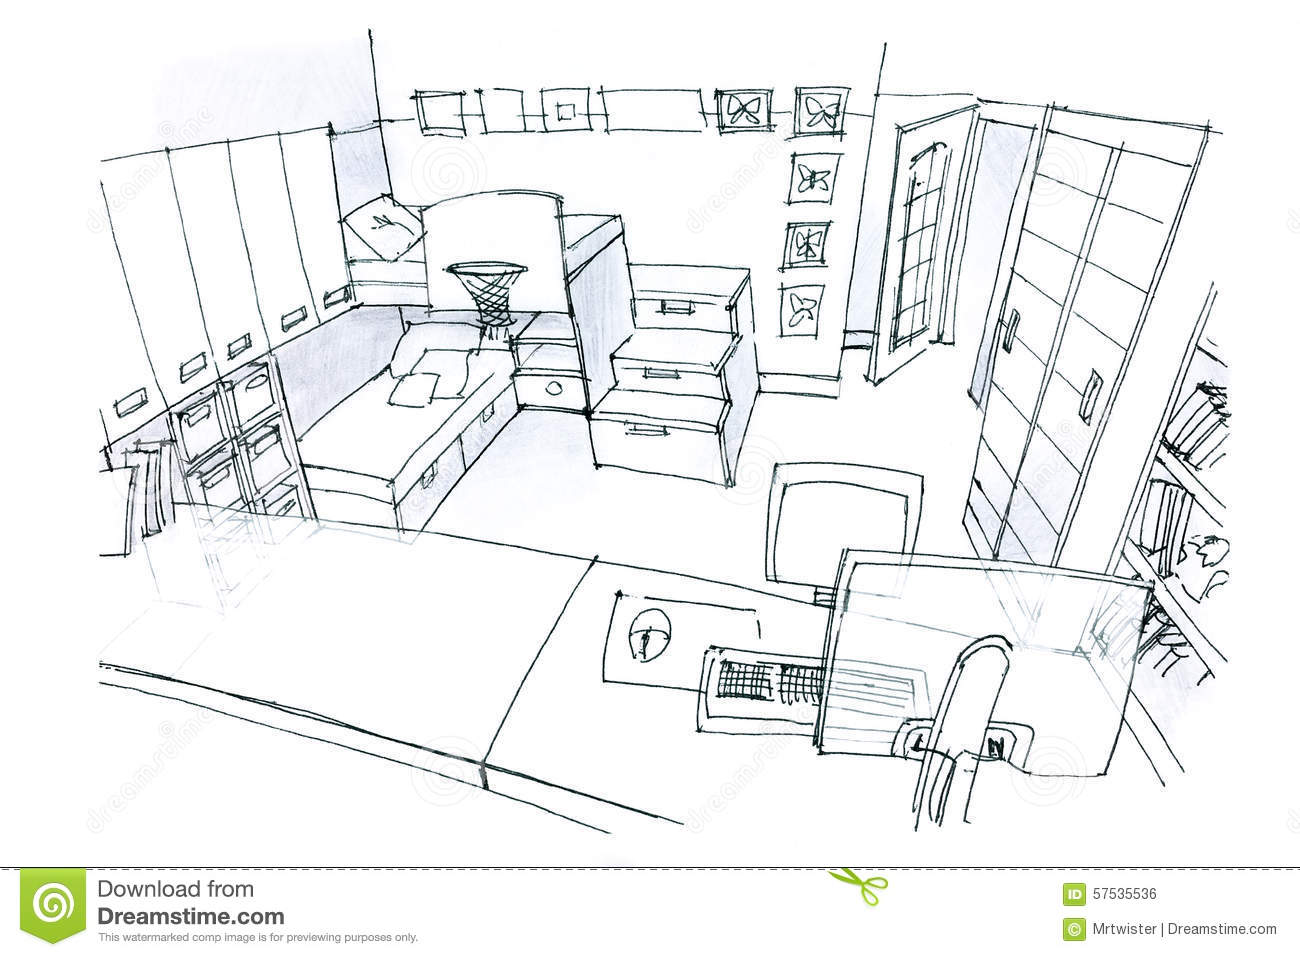 Drawing In Black And White Of An Idea For Kids Room With